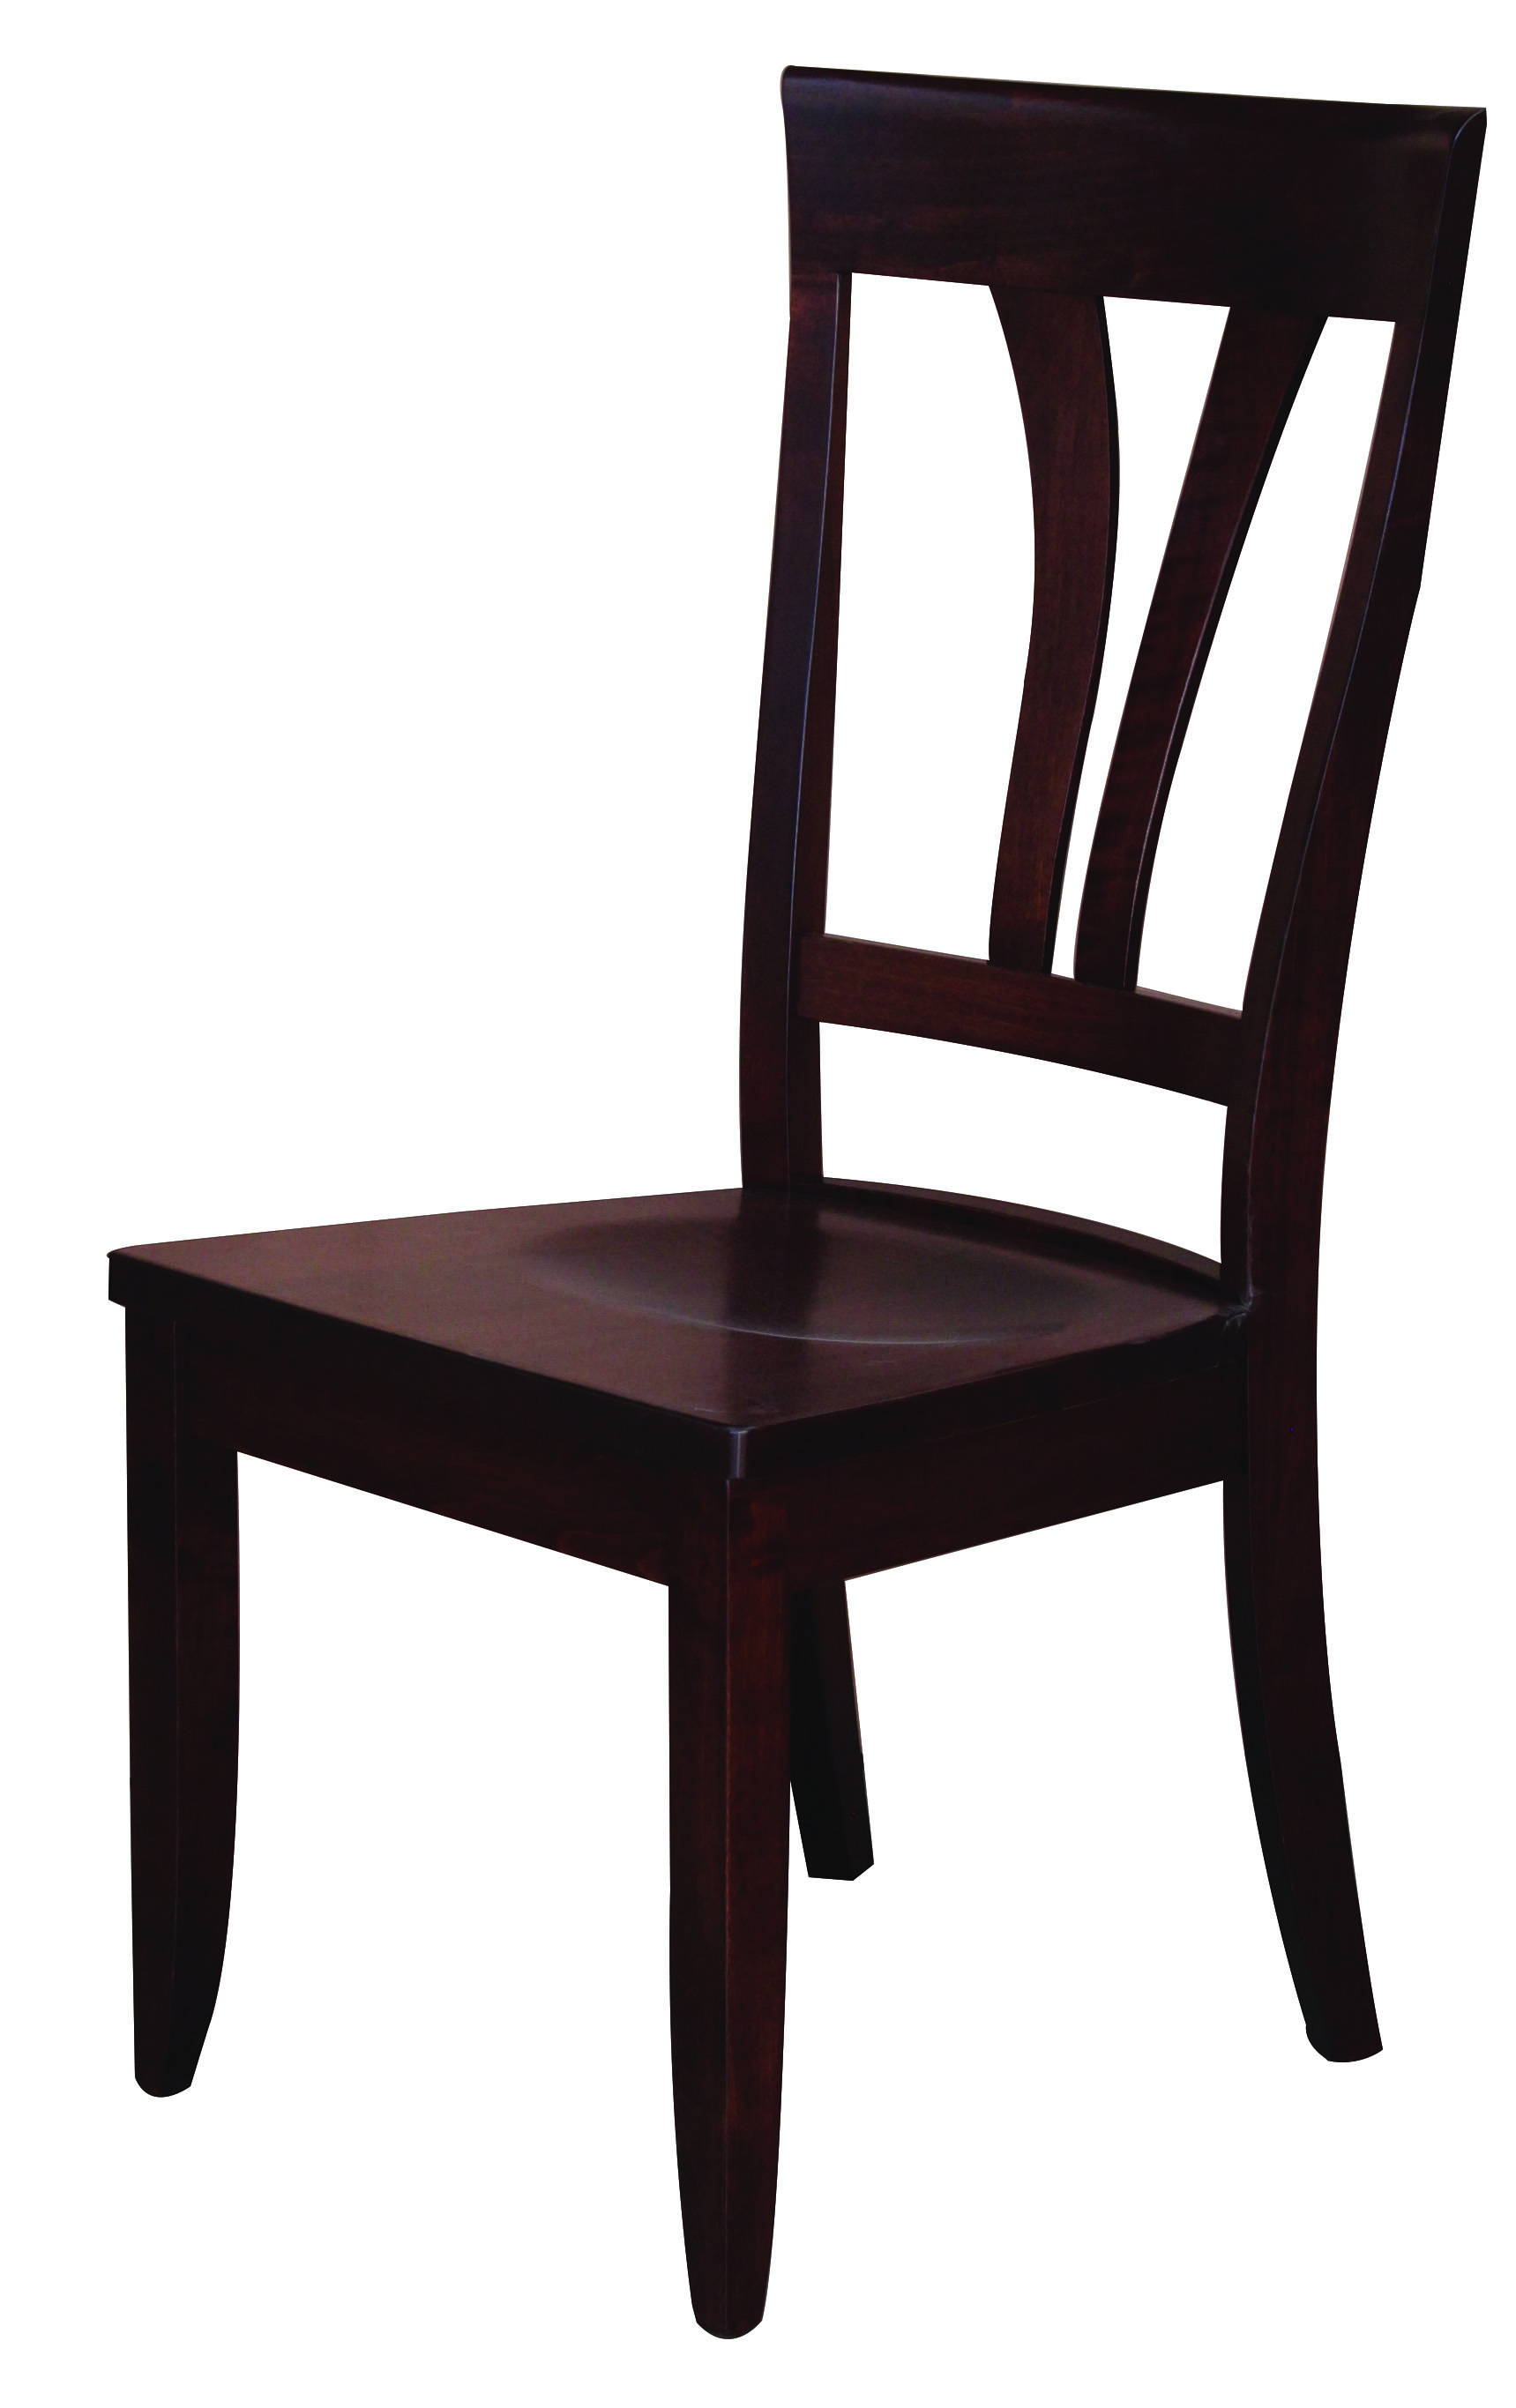 Glenwood Solid Wood, Handcrafted Kitchen Chair or DIning Chair from Harvest Home Interiors Amish Furniture